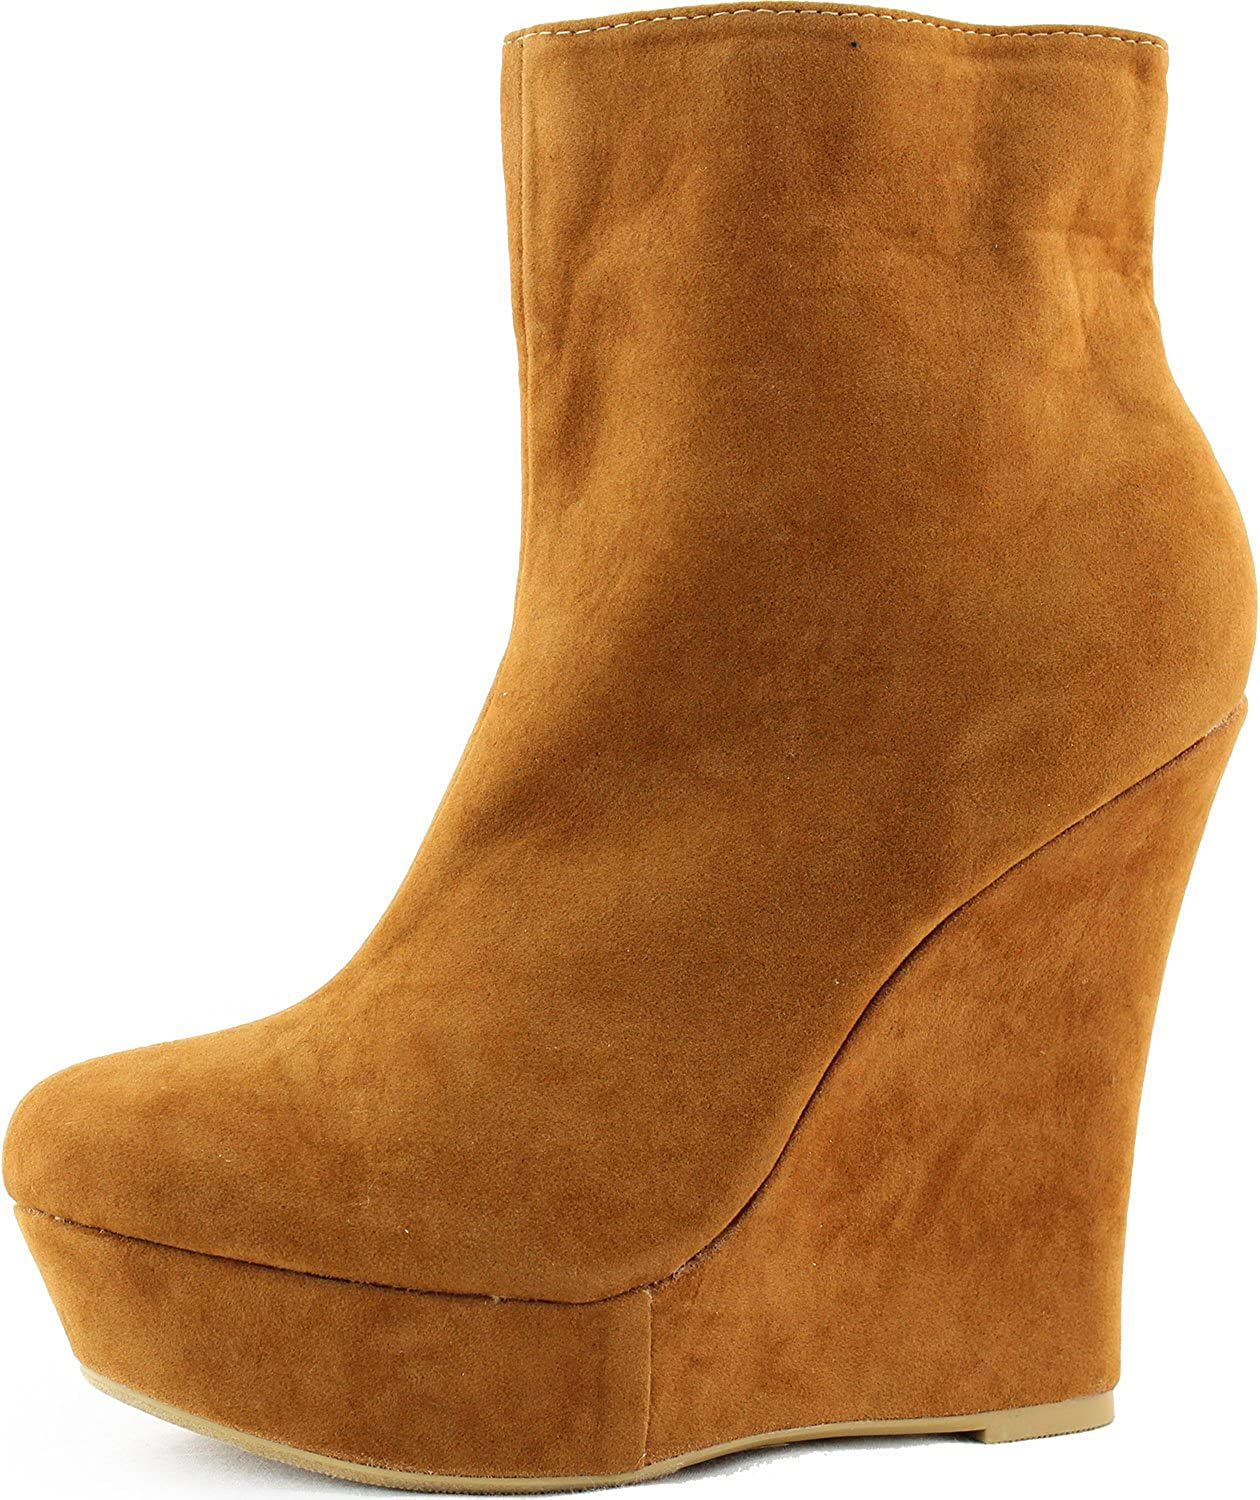 Women's Wedge Ankle Booties Boat High Heel Side Zipper Mid Calf Boots Fashion shoes